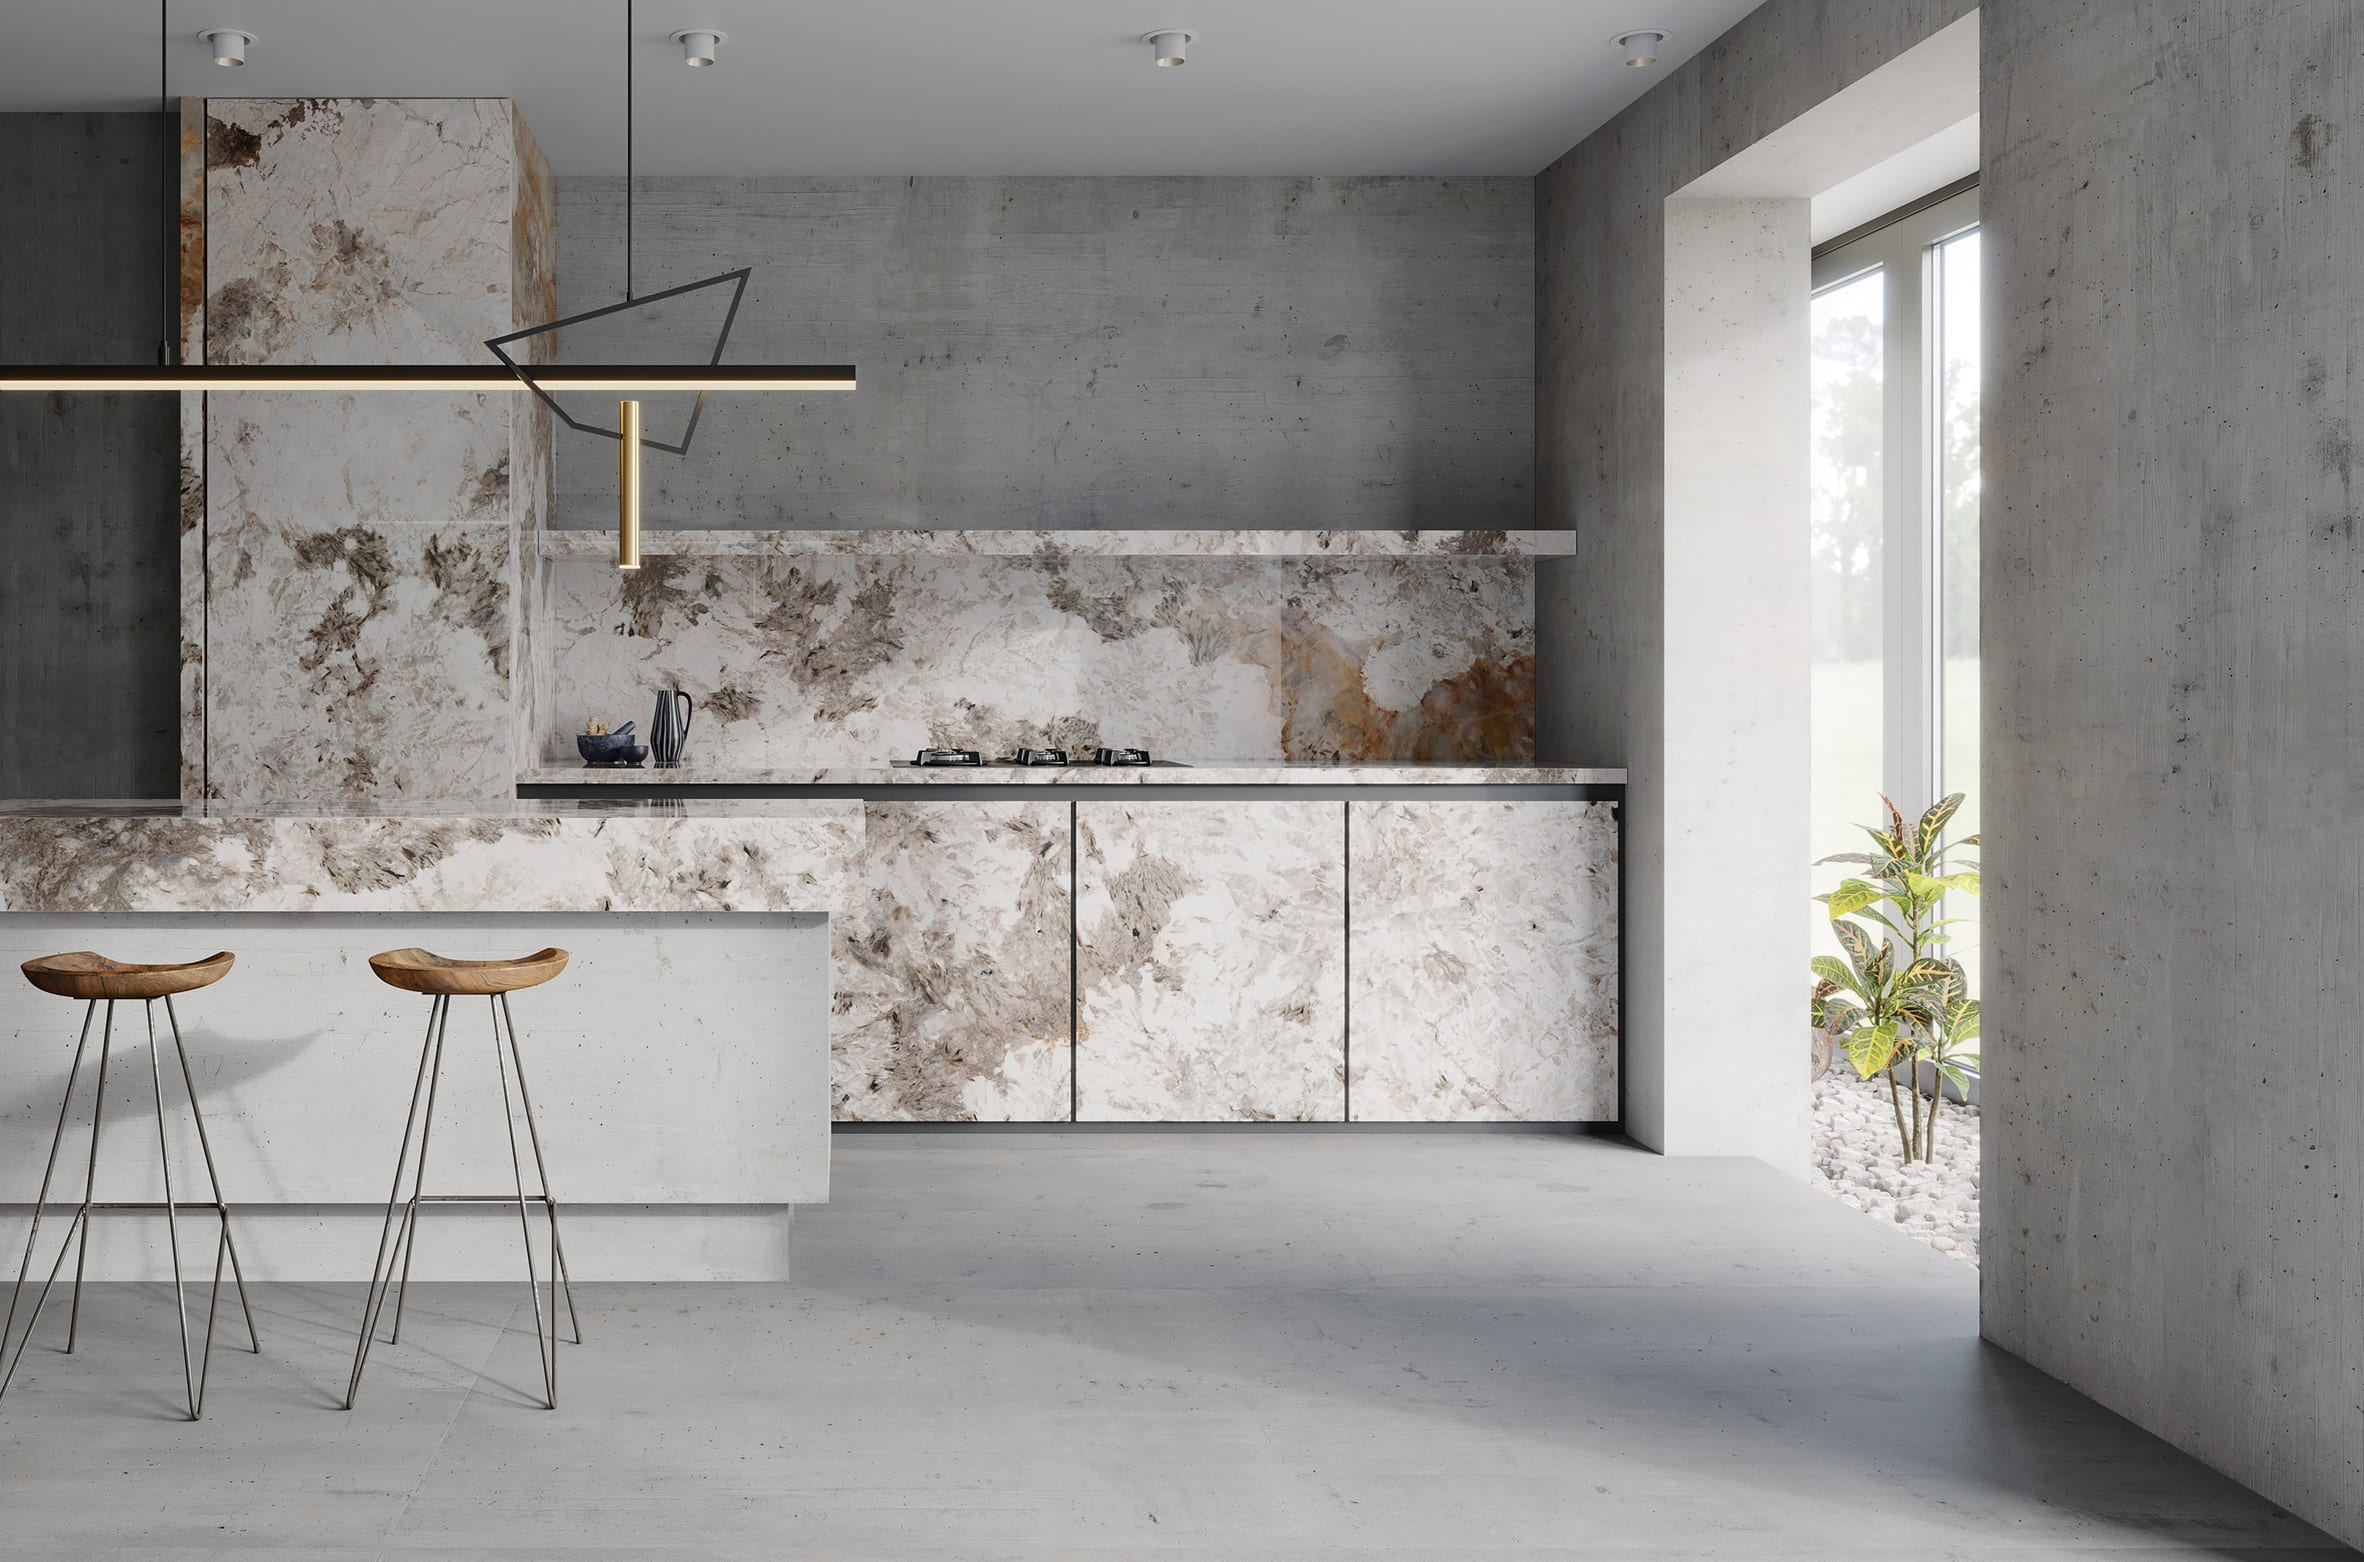 Patagonia porcelain marble-effect tile by Apavisa in a kitchen